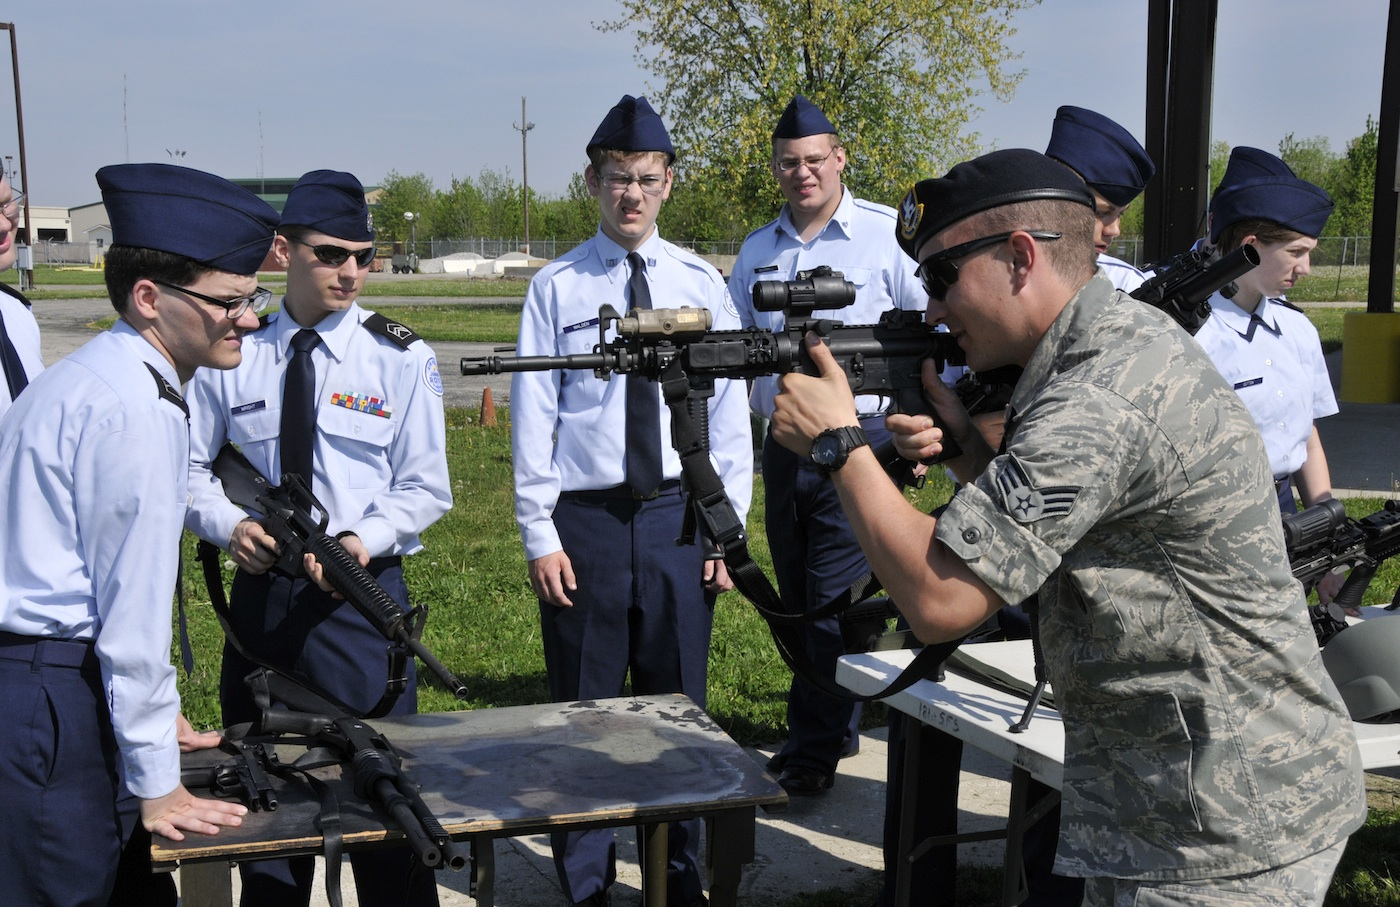 An airman in the United States Air Force demonstrates proper firing position while using the M4 rifle, with students from Terre Haute North High School in Indiana on May 6, 2015. (US Air National Guard photo by SMSgt. John S. Chapman / Released)